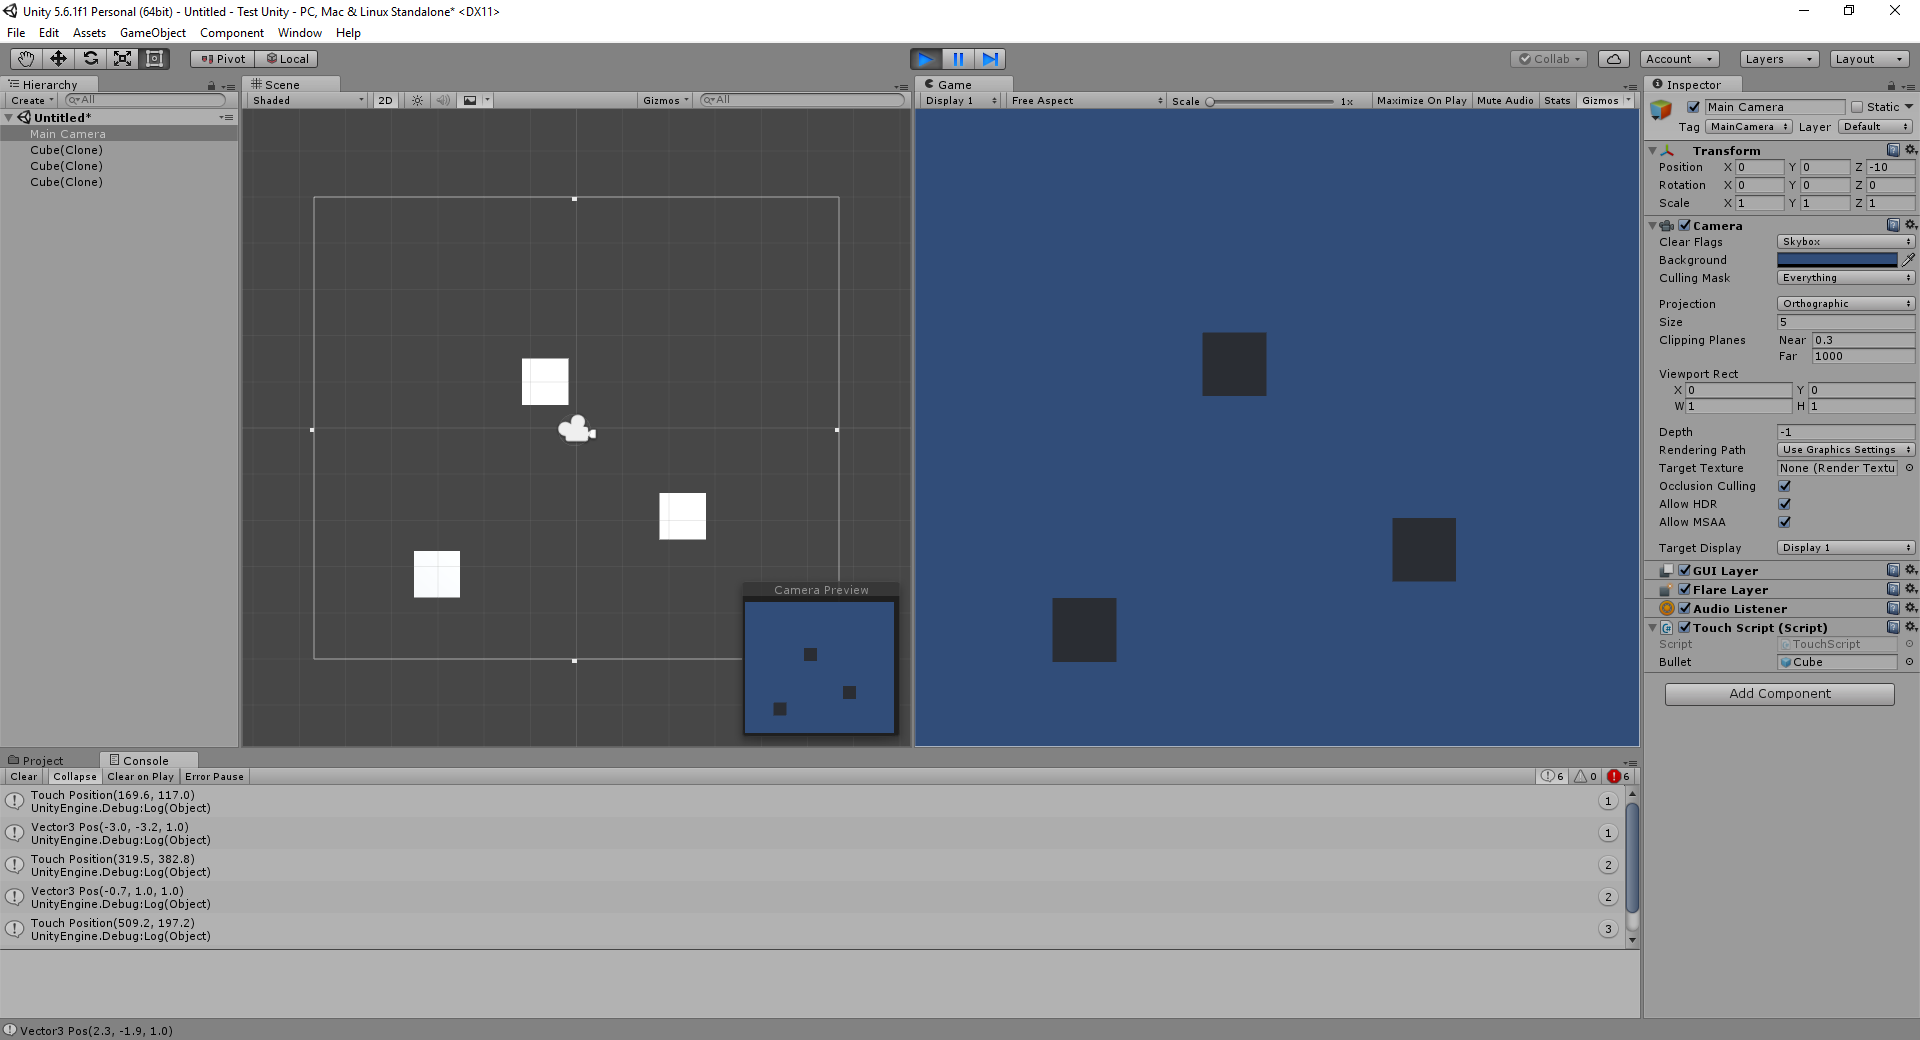 Unity 2D C# Script to Spawn Object on Screen at Touch Position